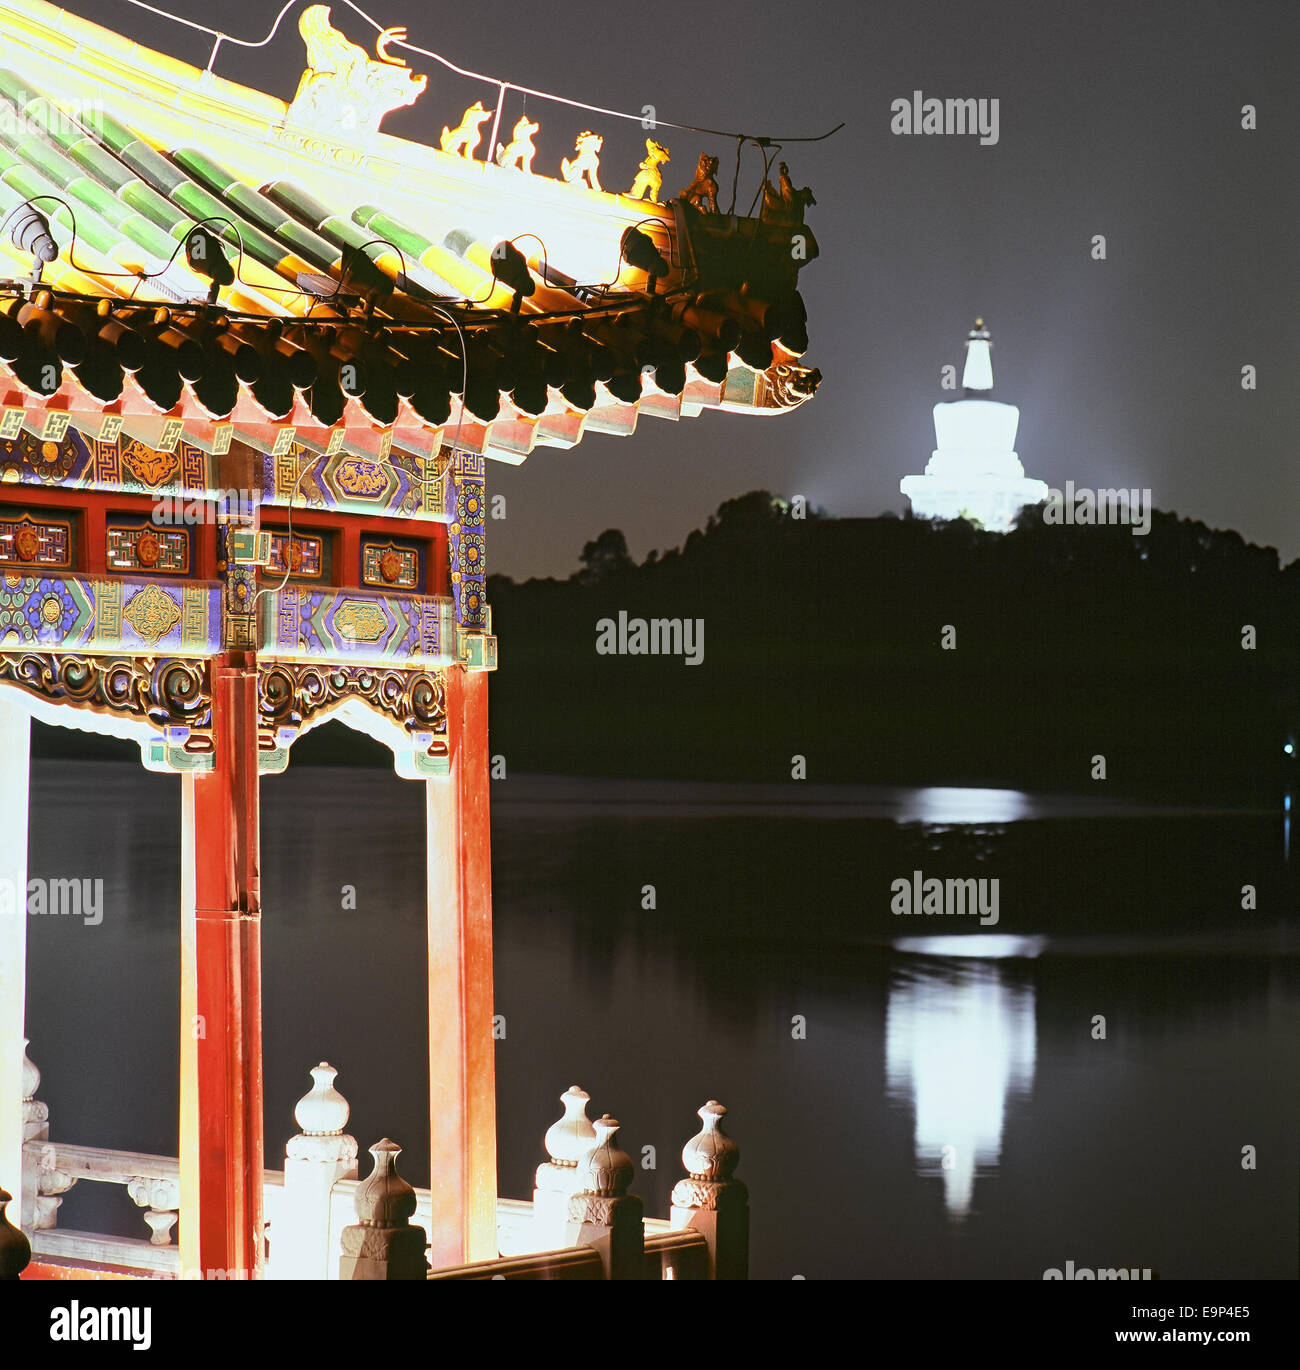 Oct. 22, 2014 - (CHINA OUT) Only for use outside China. Do not use for sale or exhibit in China. BEIJING CHINA: - Stock Image